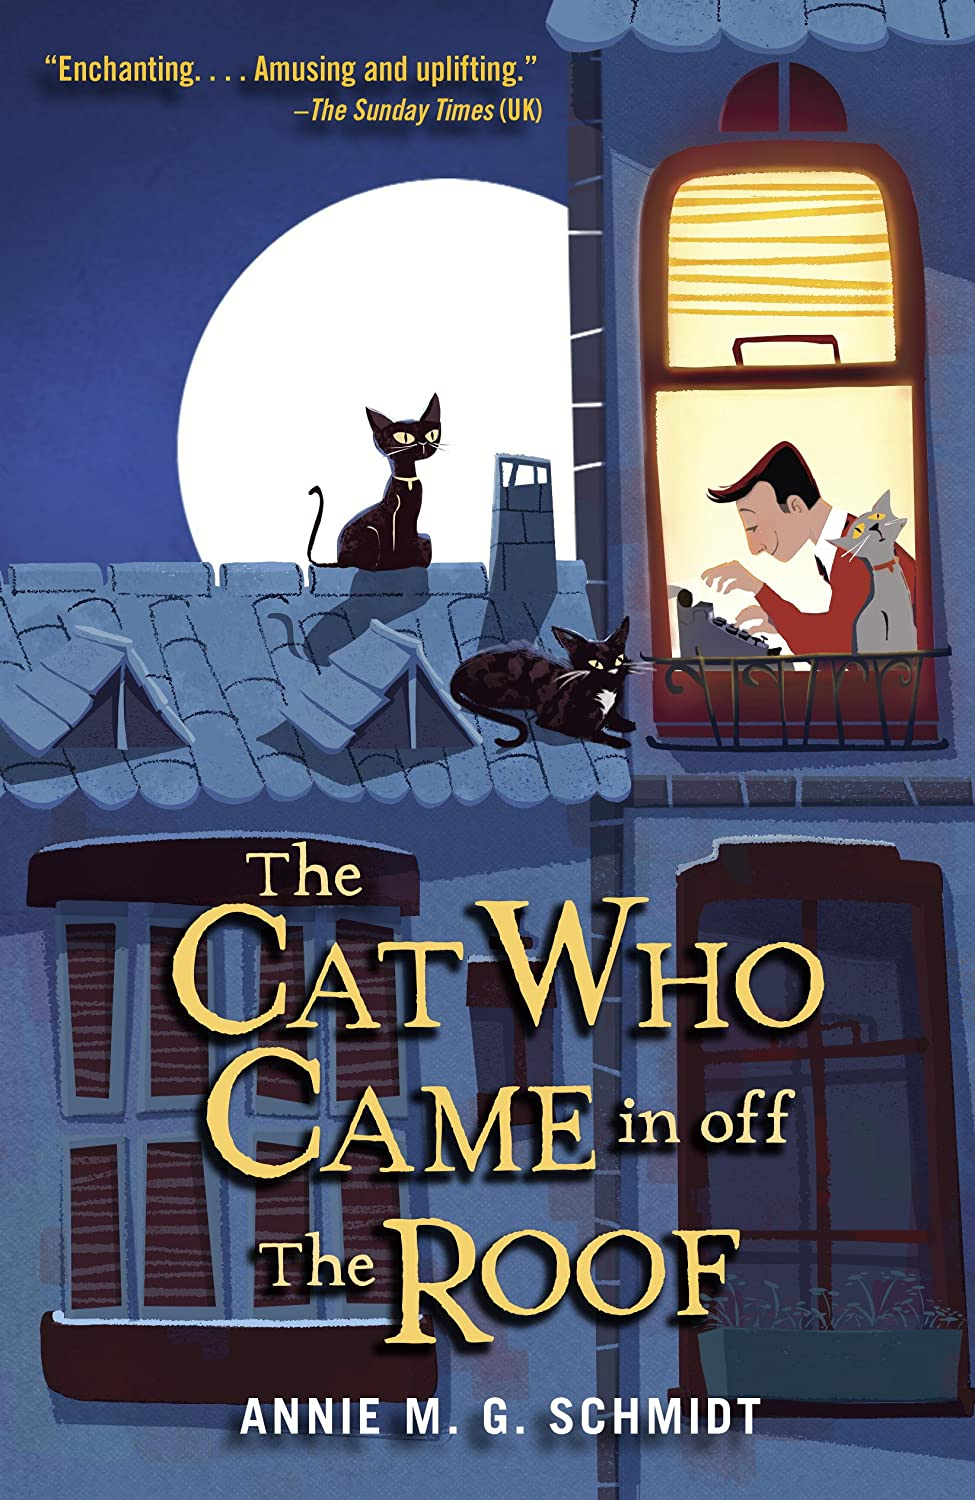 The Cat who came in off the roof d'Annie M. G. Schmidt 91jFjAj8JwL._SL1500_